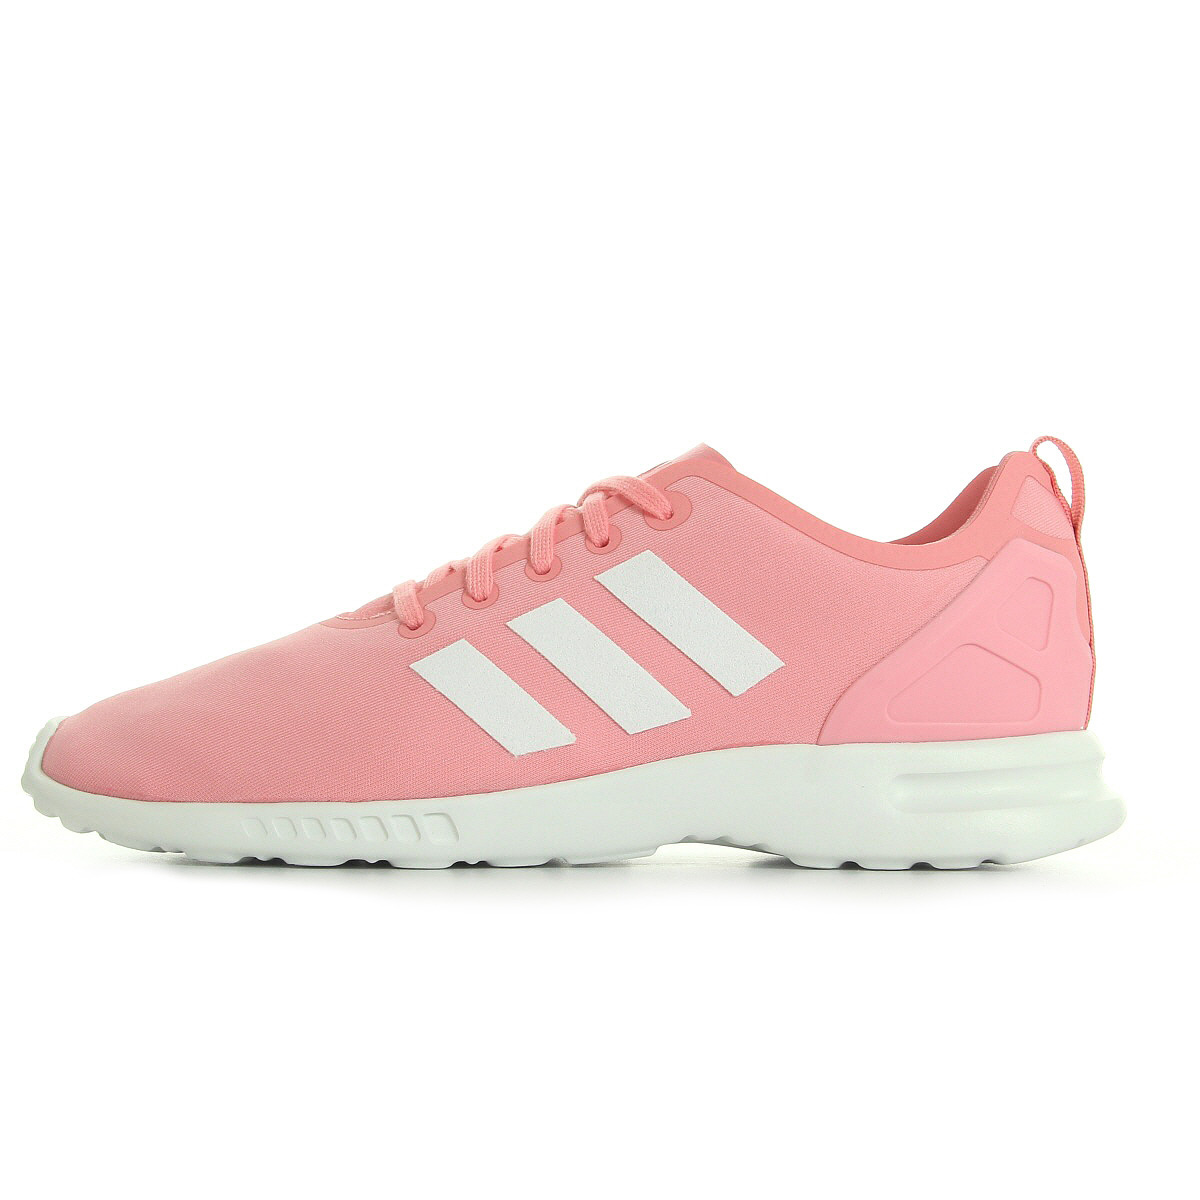 adidas ZX Flux Smooth W S82885, Baskets mode femme